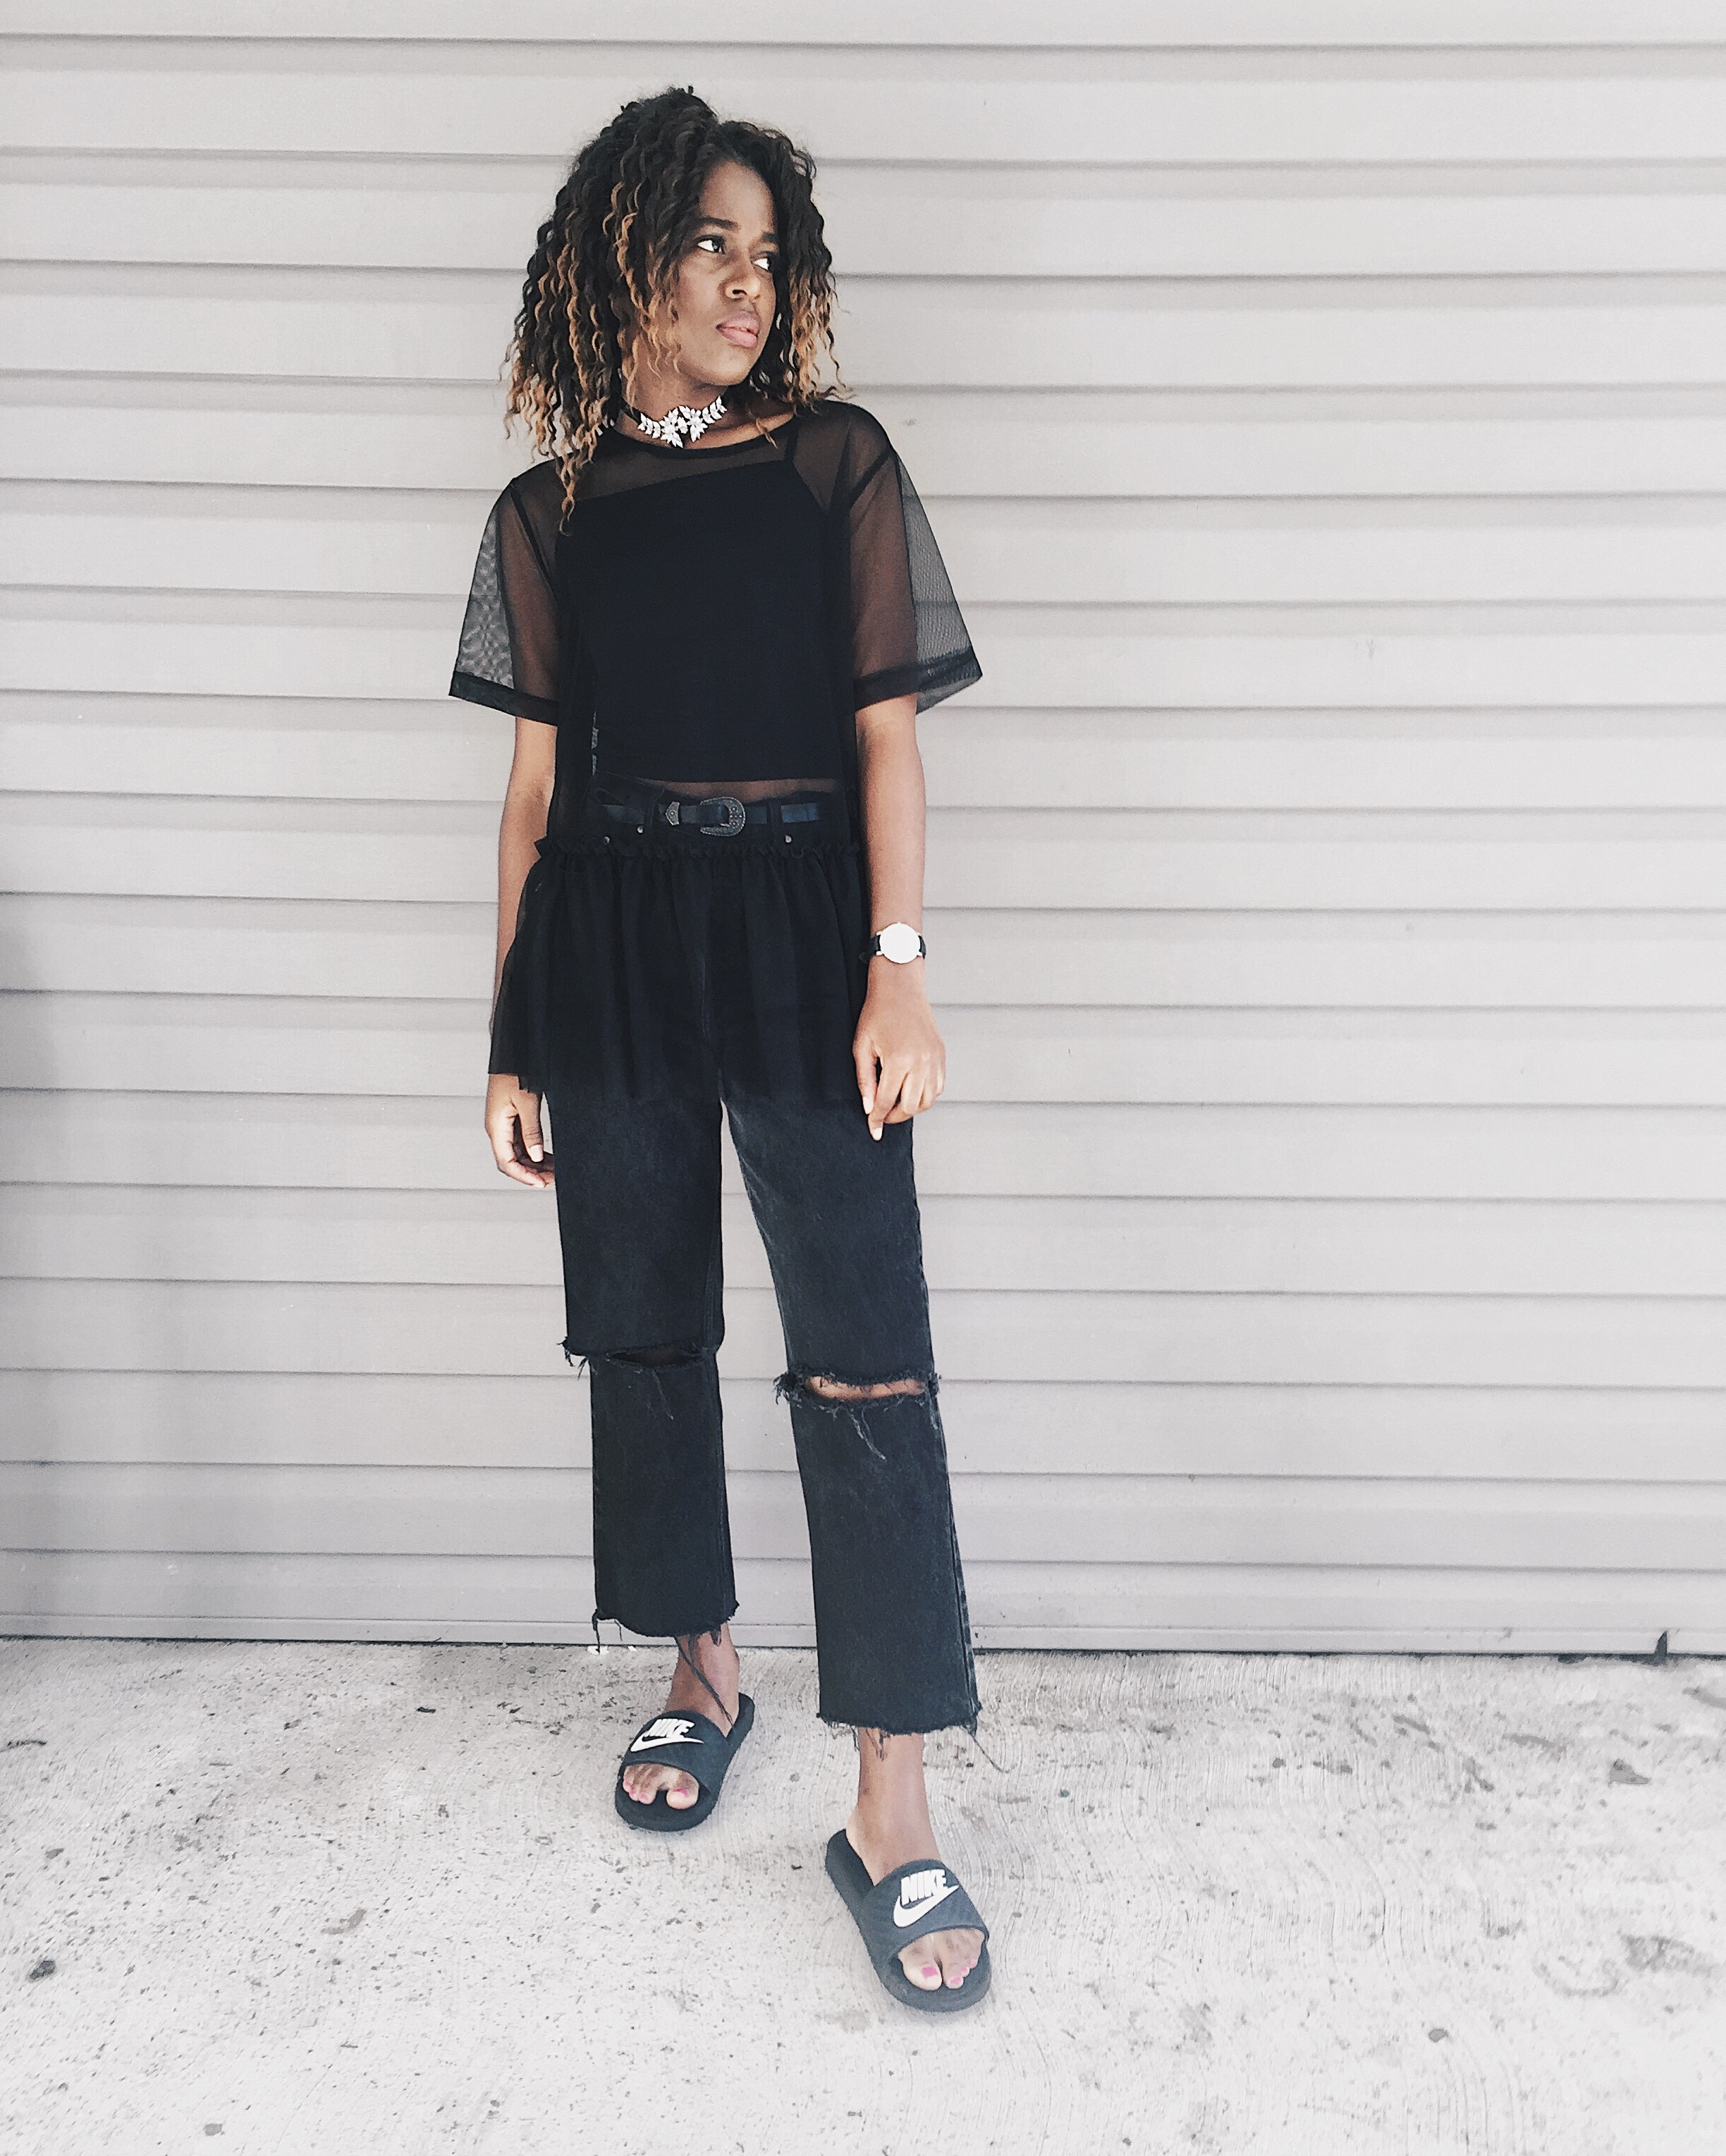 black destroyed denim jeans, mesh top, black tank top, nike slides, diamond choker